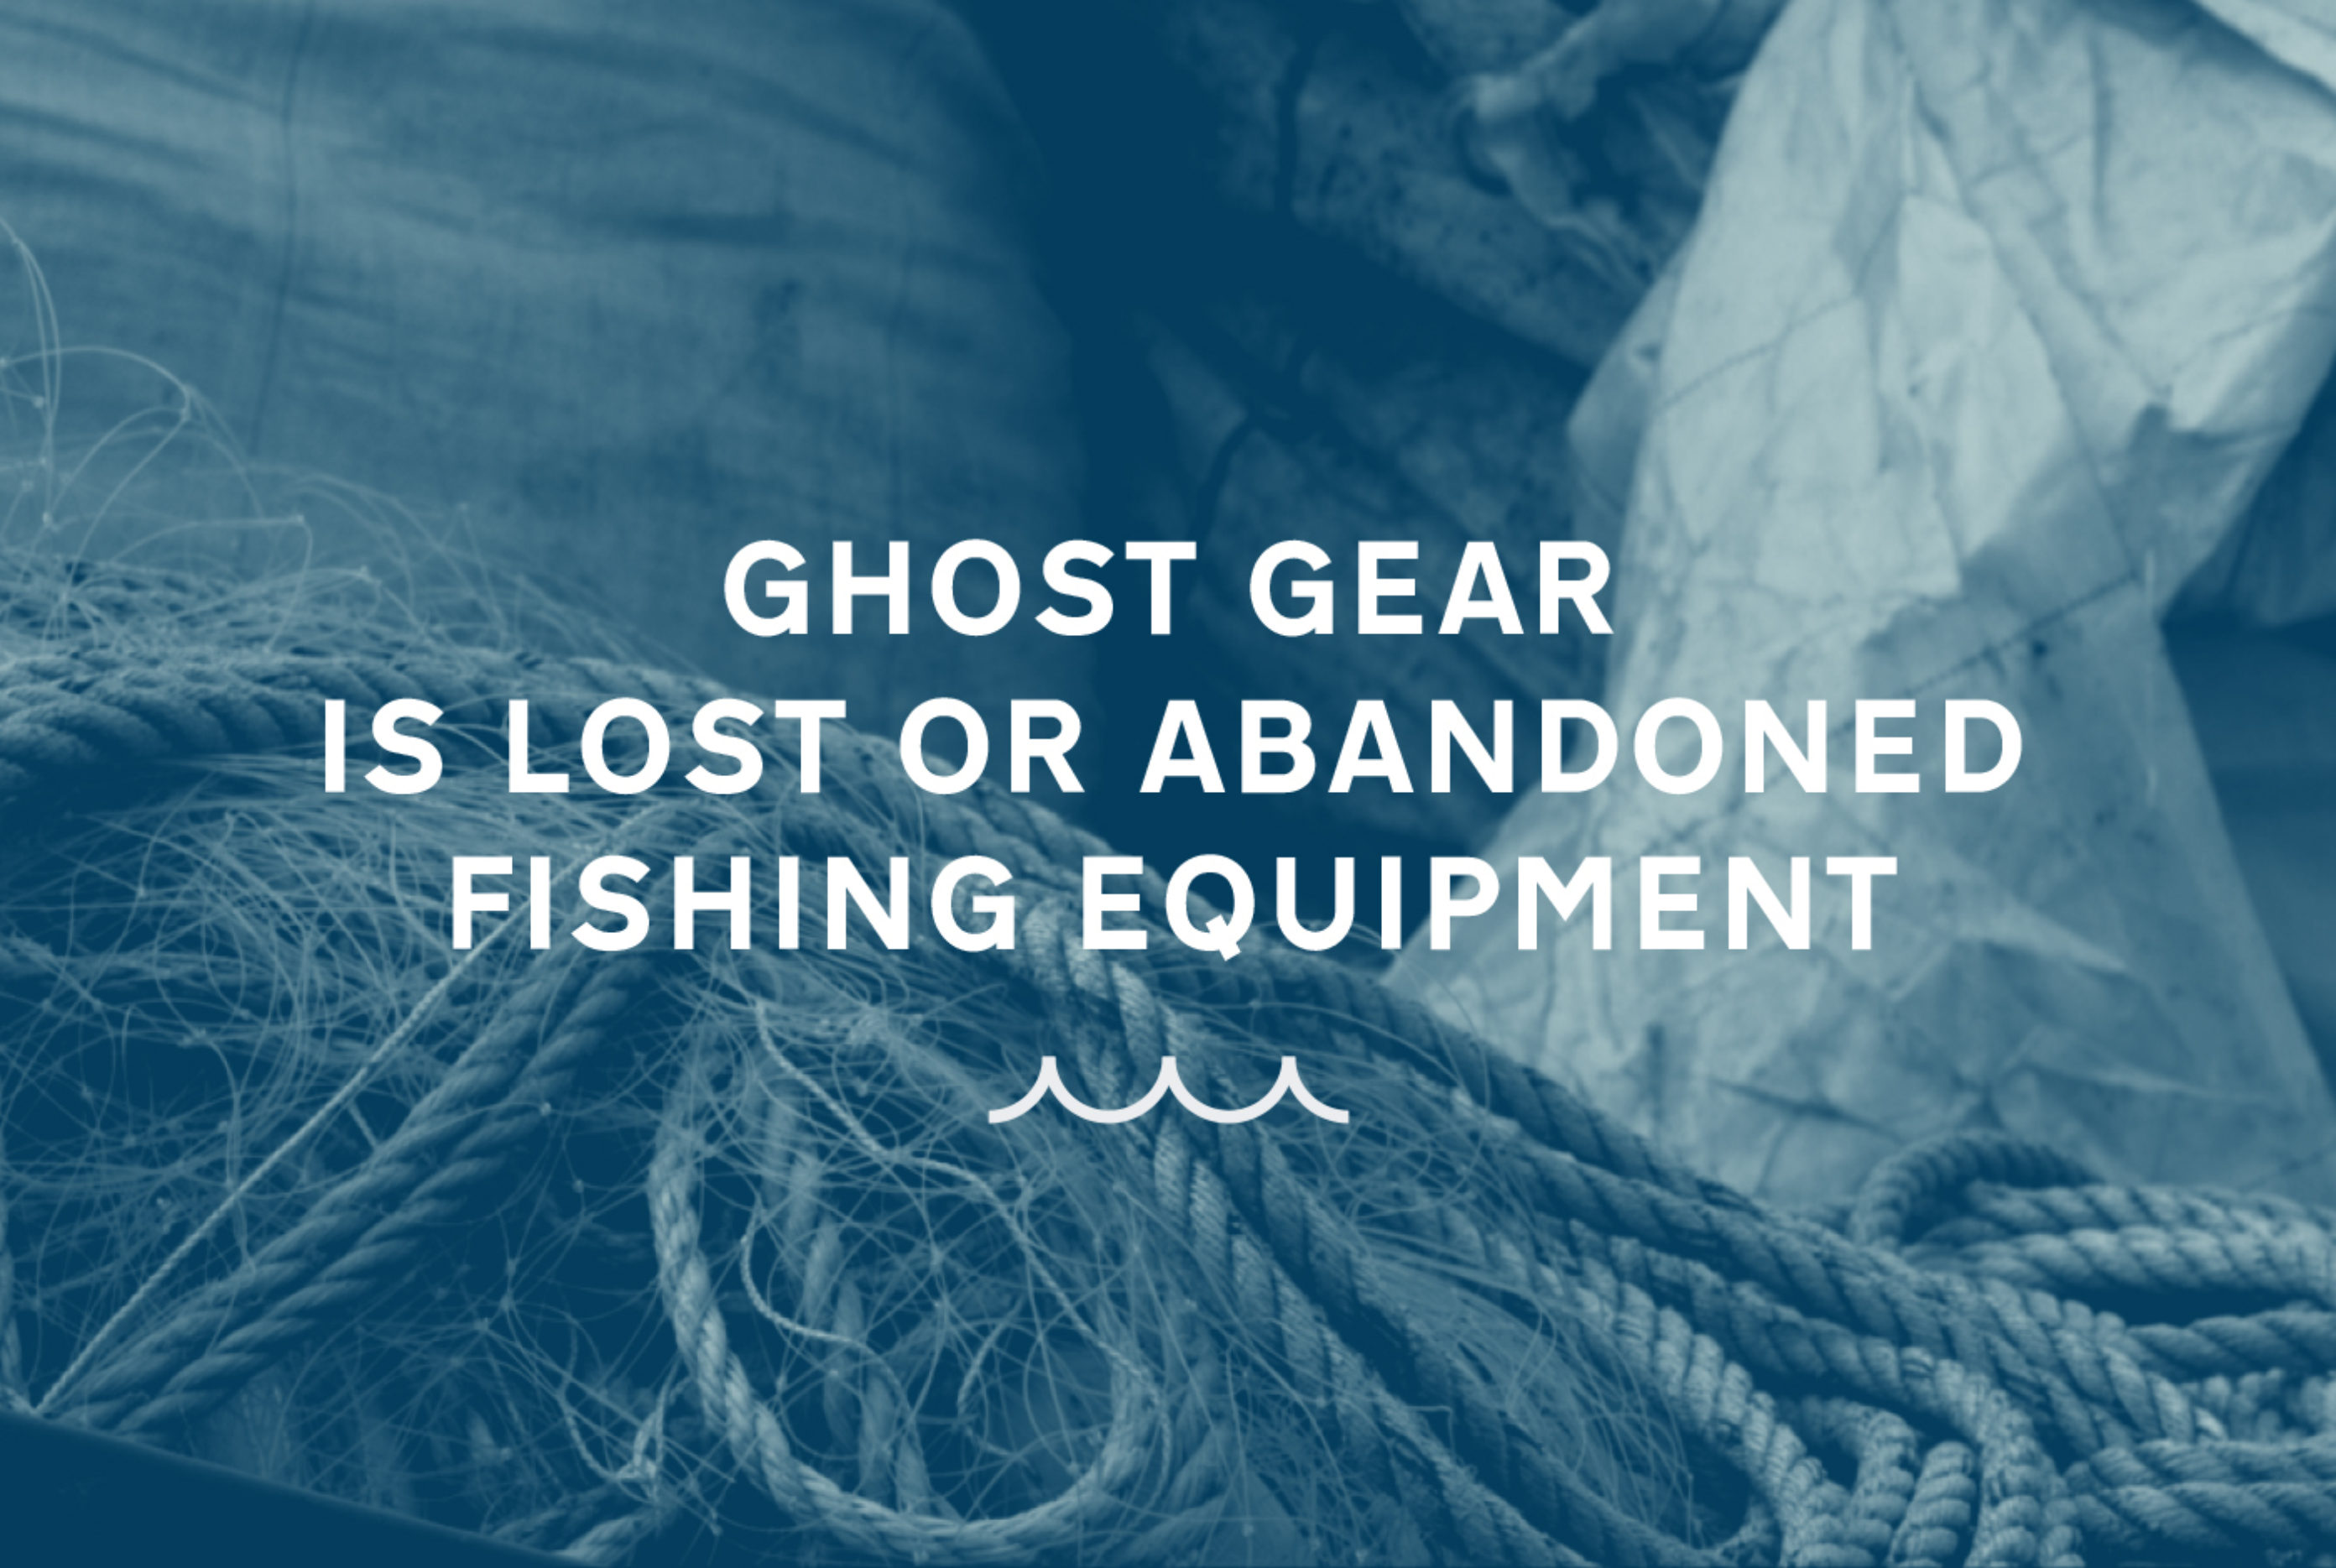 Global Ghost Gear 1400X940 1 0